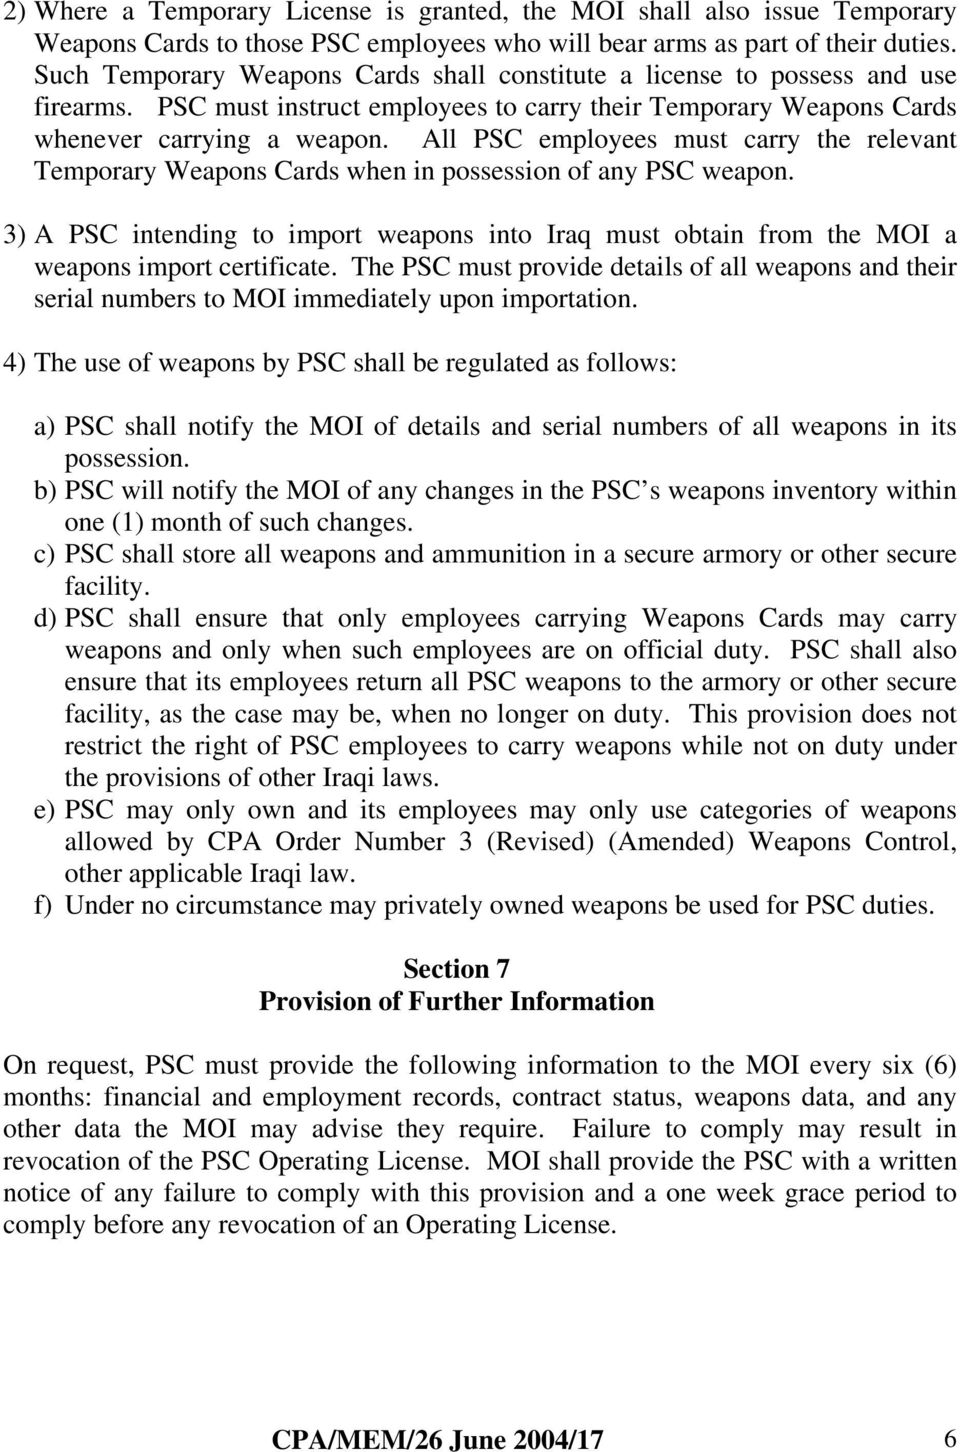 All PSC employees must carry the relevant Temporary Weapons Cards when in possession of any PSC weapon.